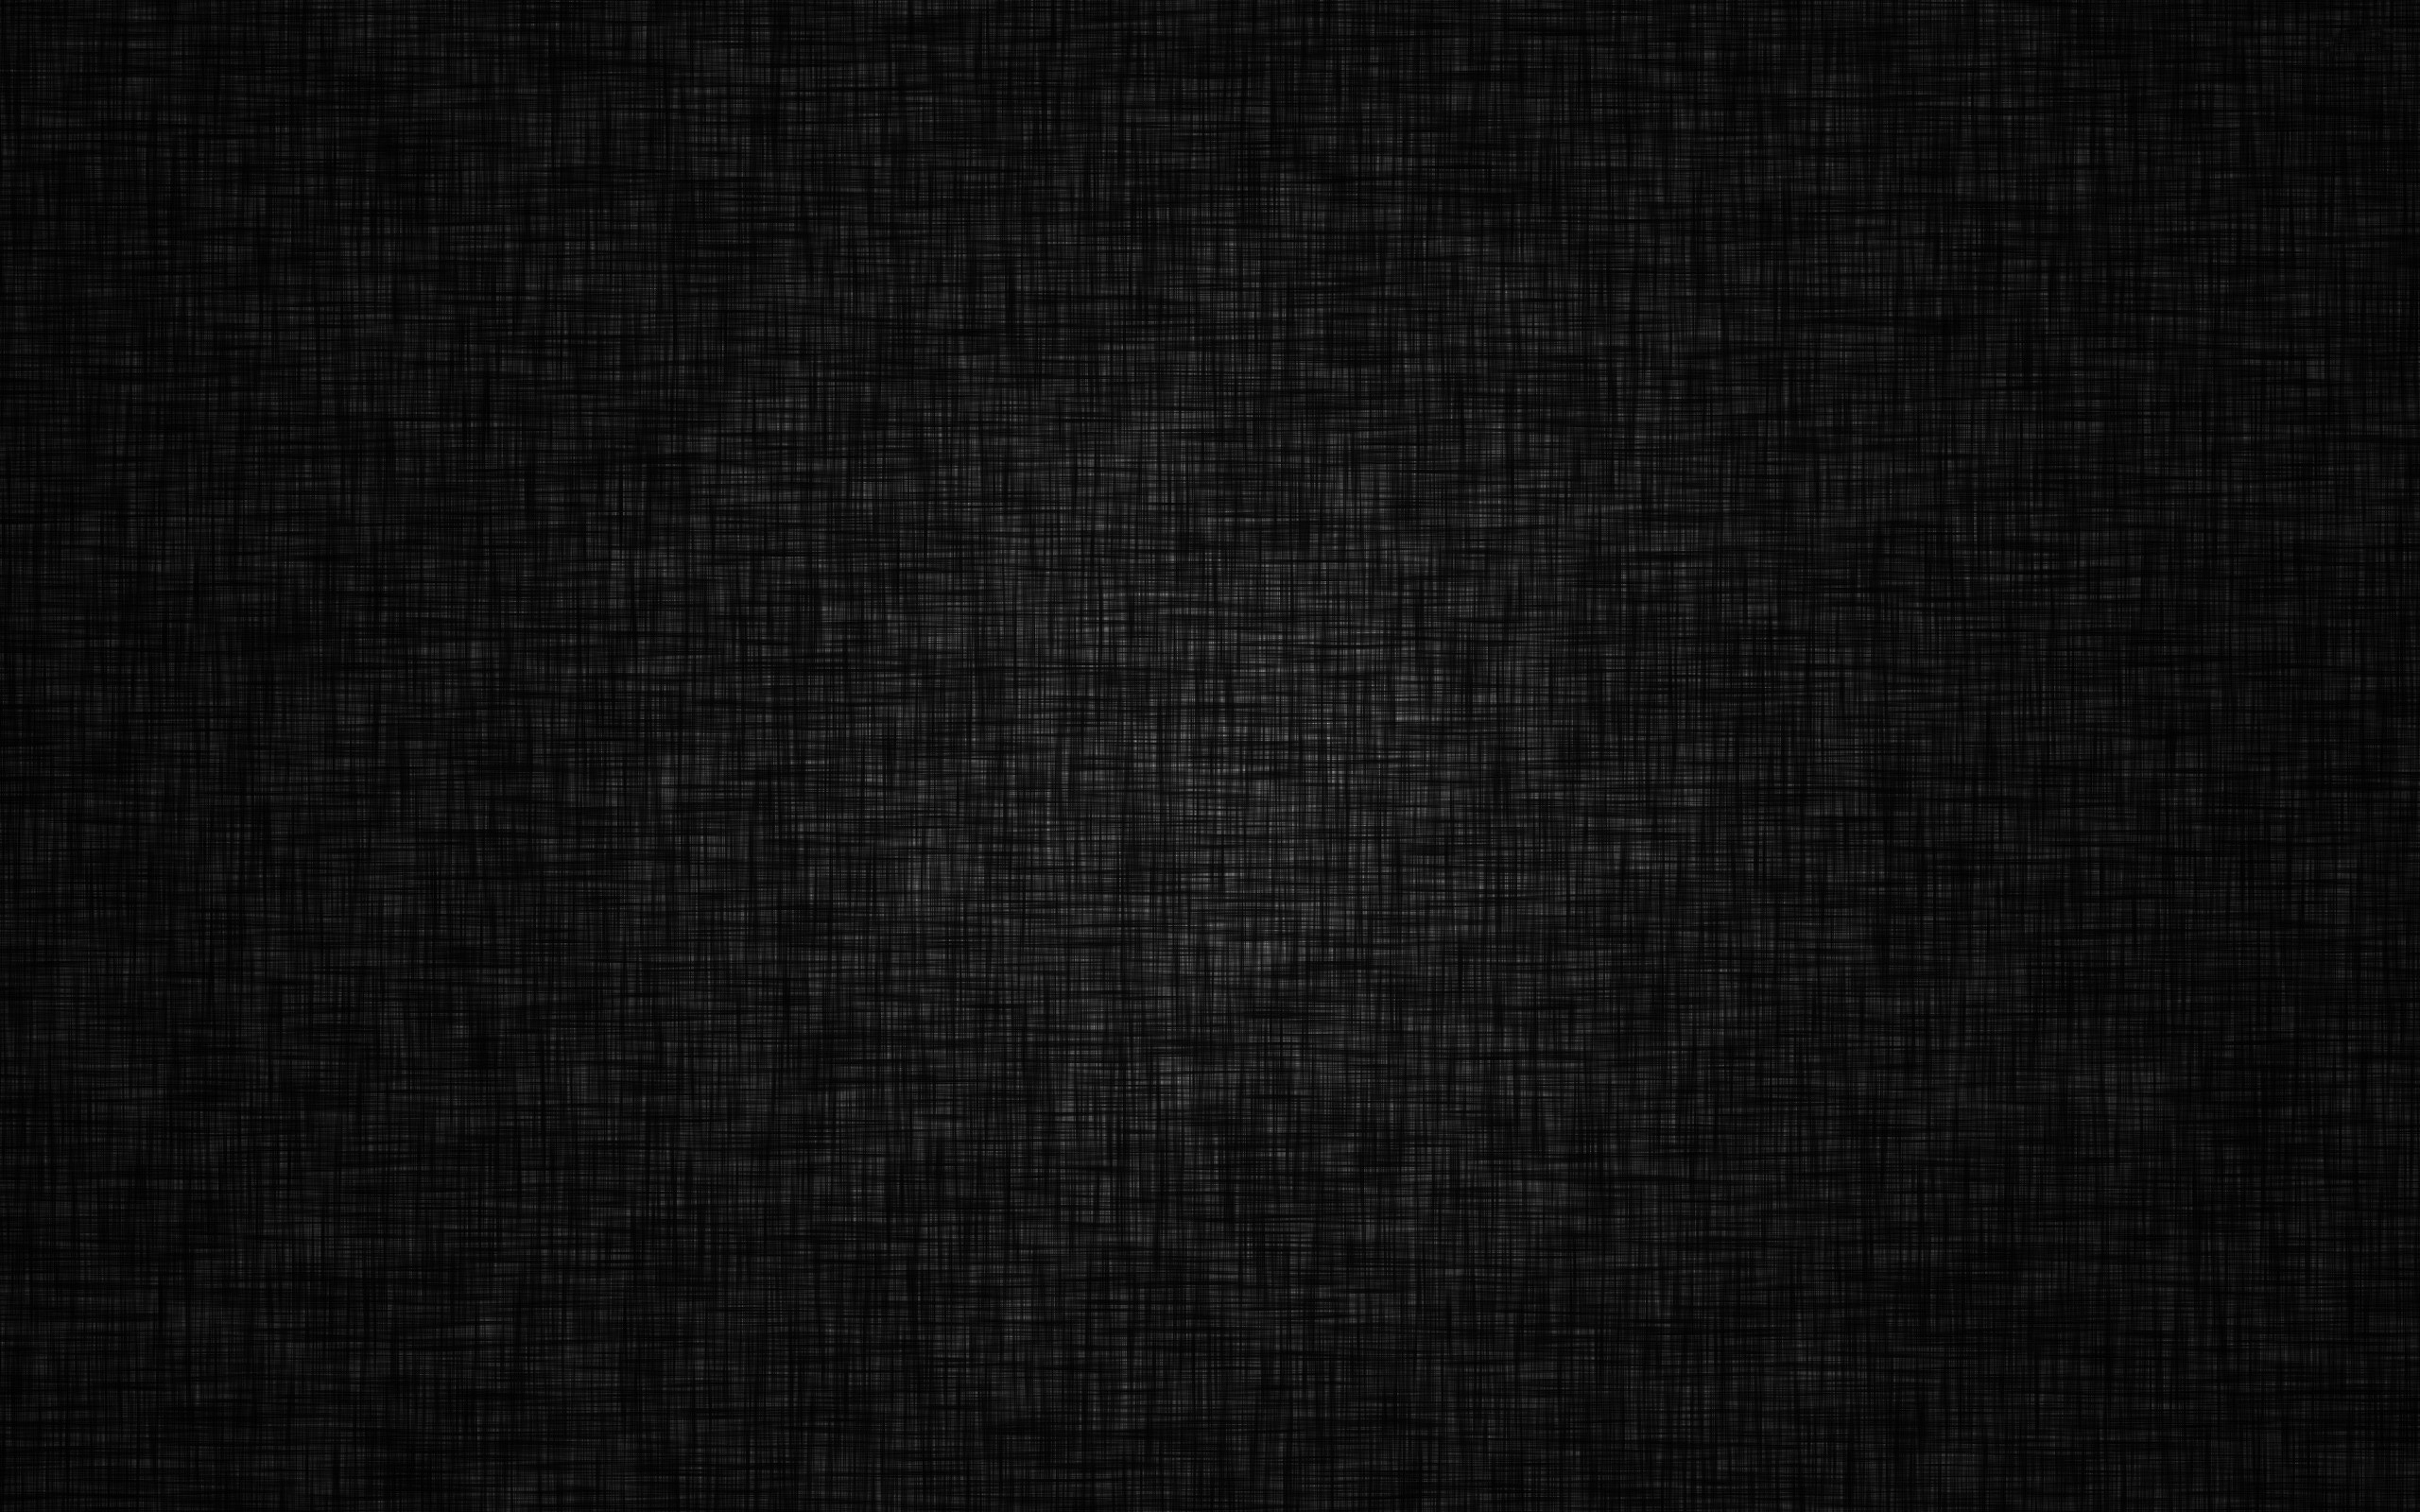 2560x1600  Black Texture Wallpapers